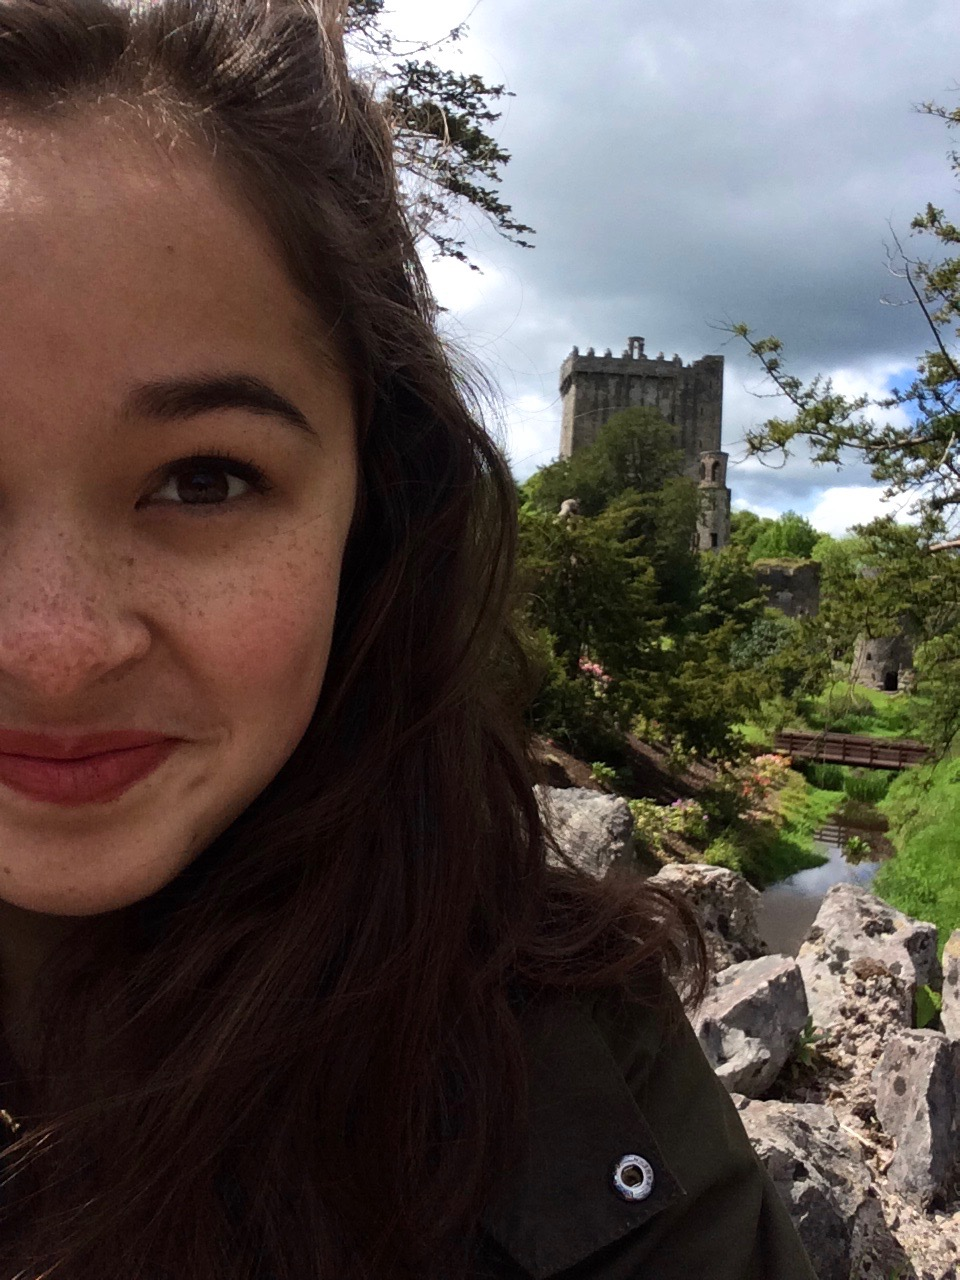 me, pretending to take a photo of blarney castle - We're all able to tell that this was just an excuse for a selfie.